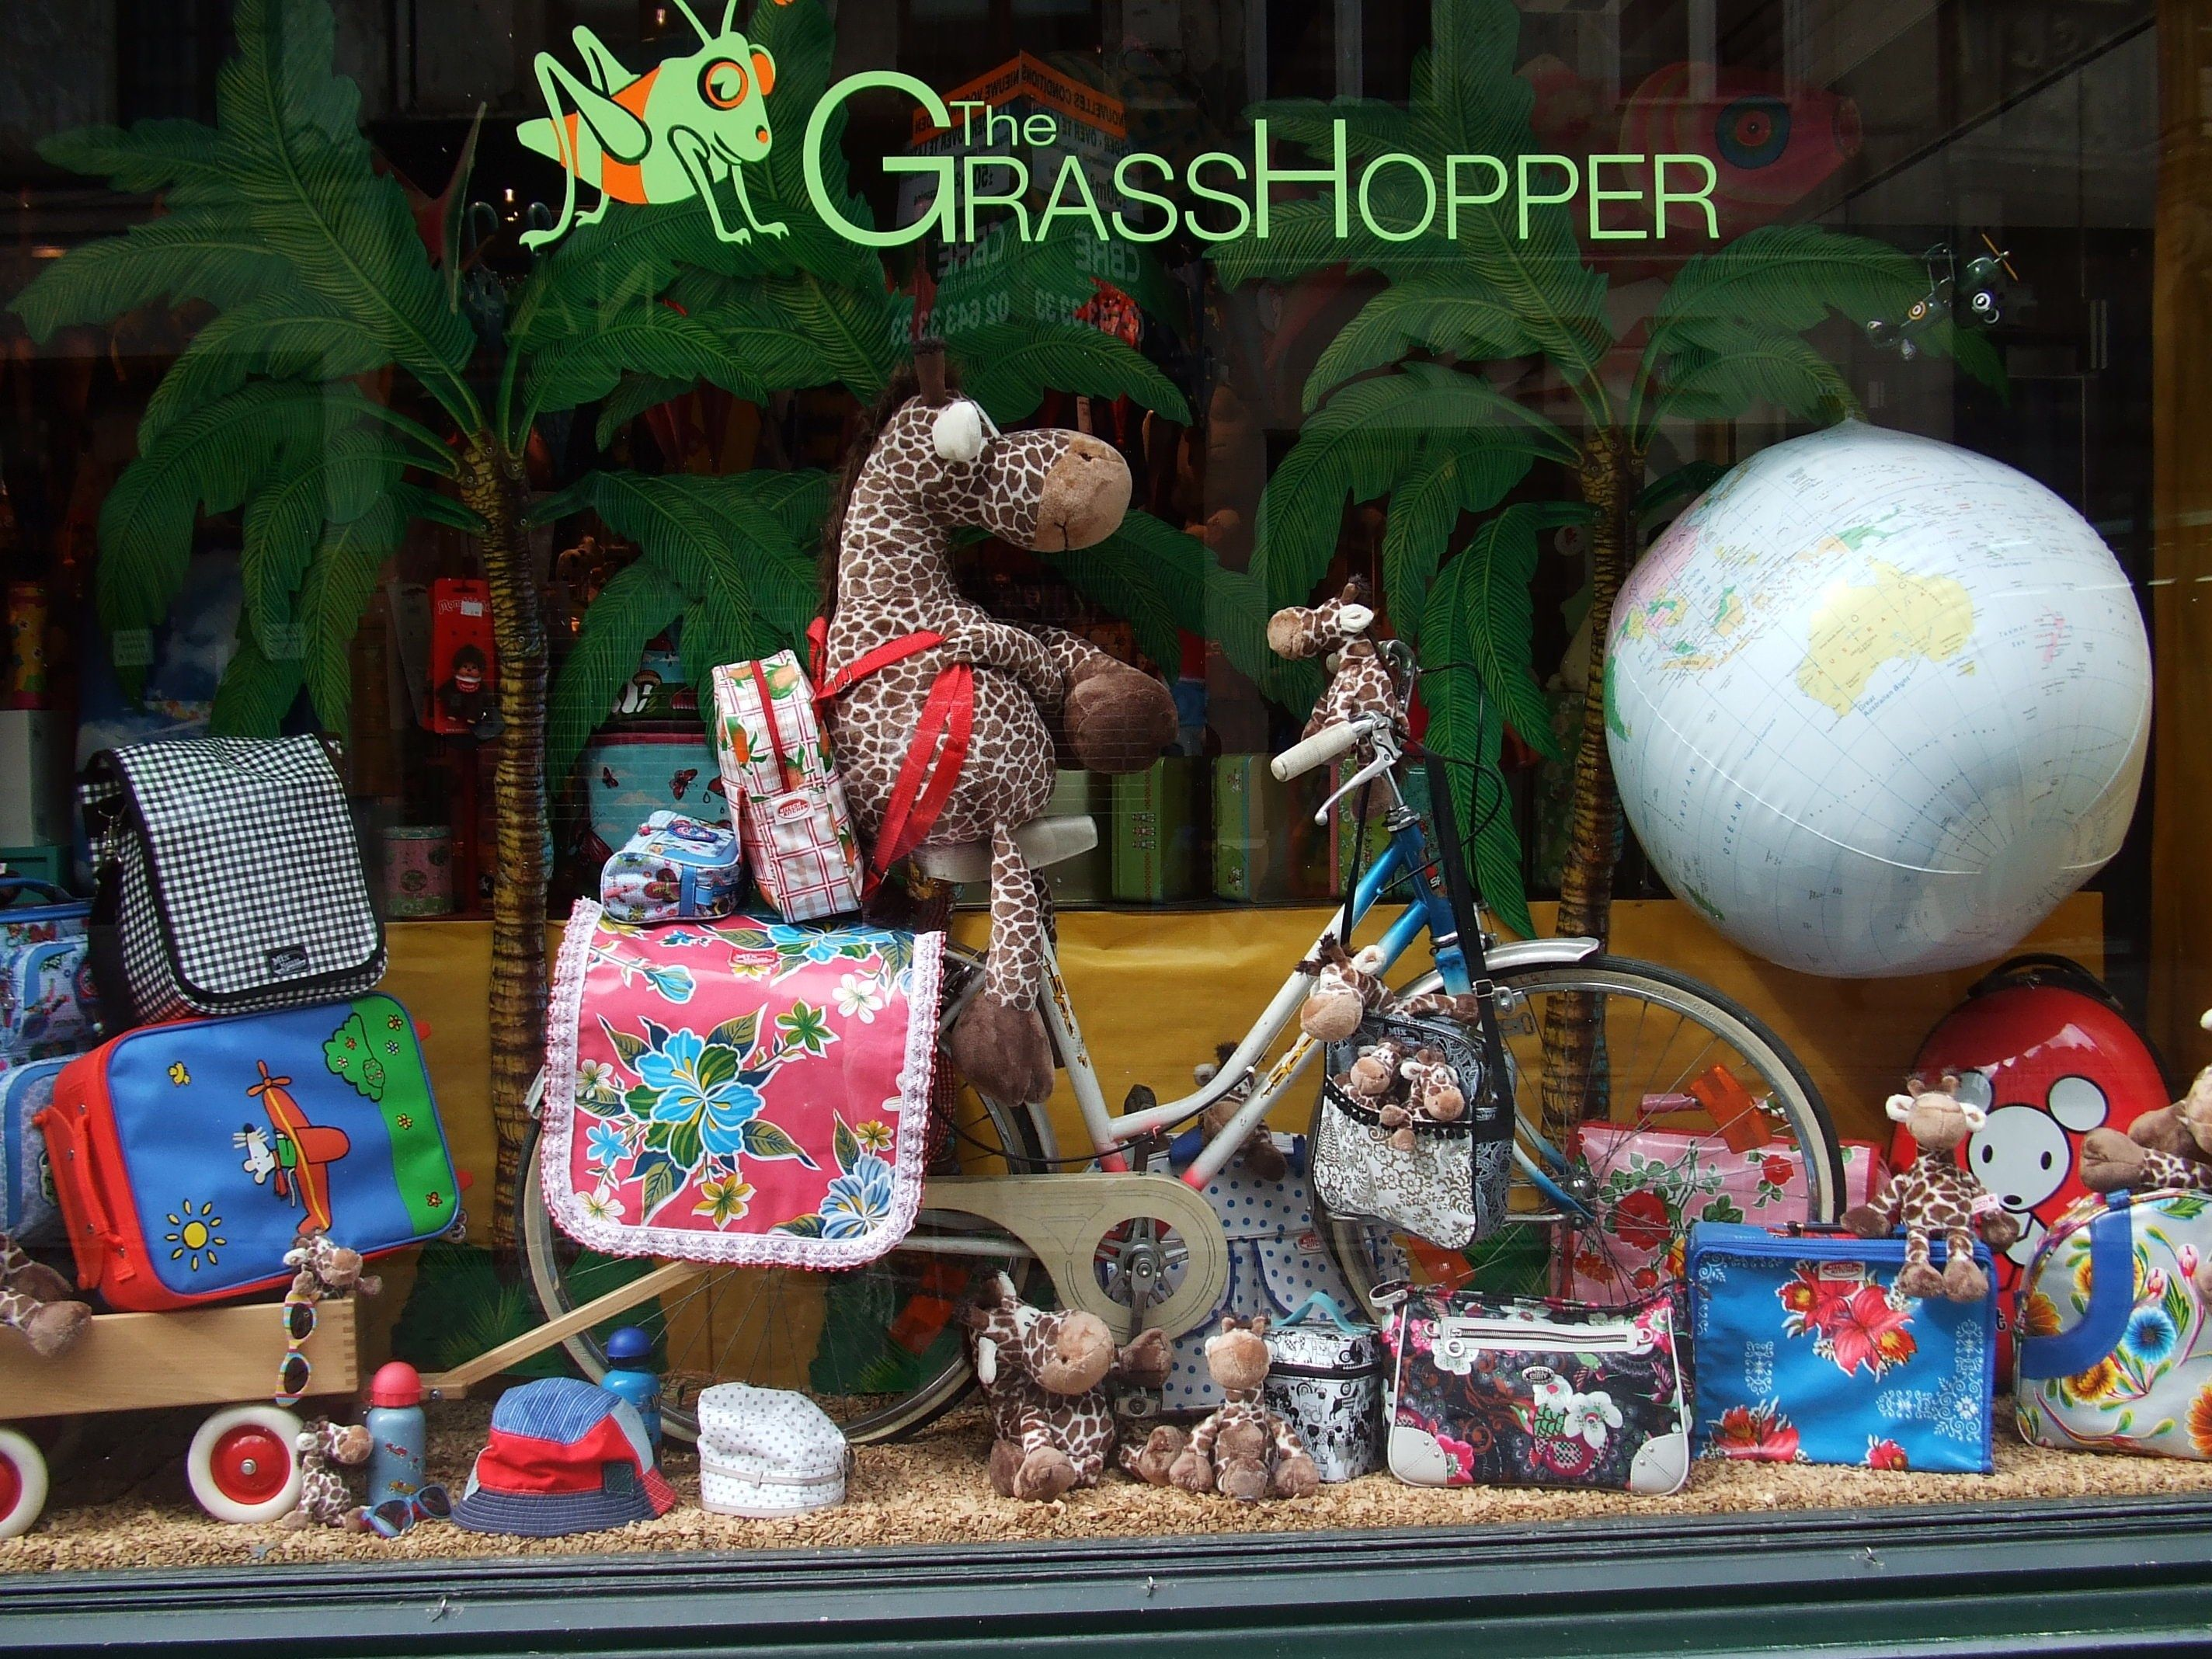 SHOPPING Grasshopper This enormous two storey toy shop has